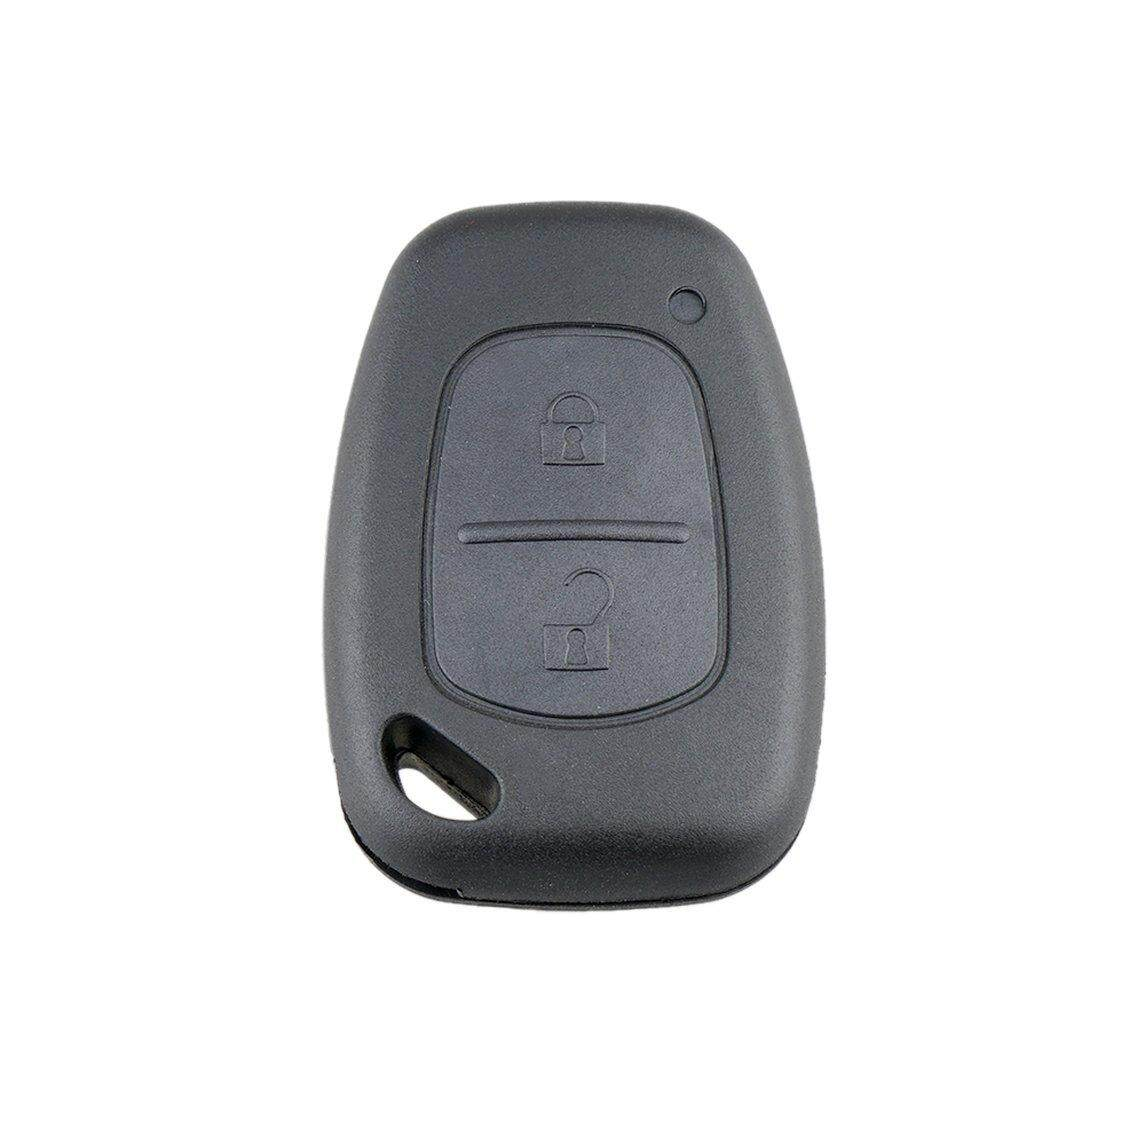 Car Electronics & Accessories Gazechimp 2 Button Remote Flip Car Key Fob Shell Case For Vauxhall Opel Astra Zafira